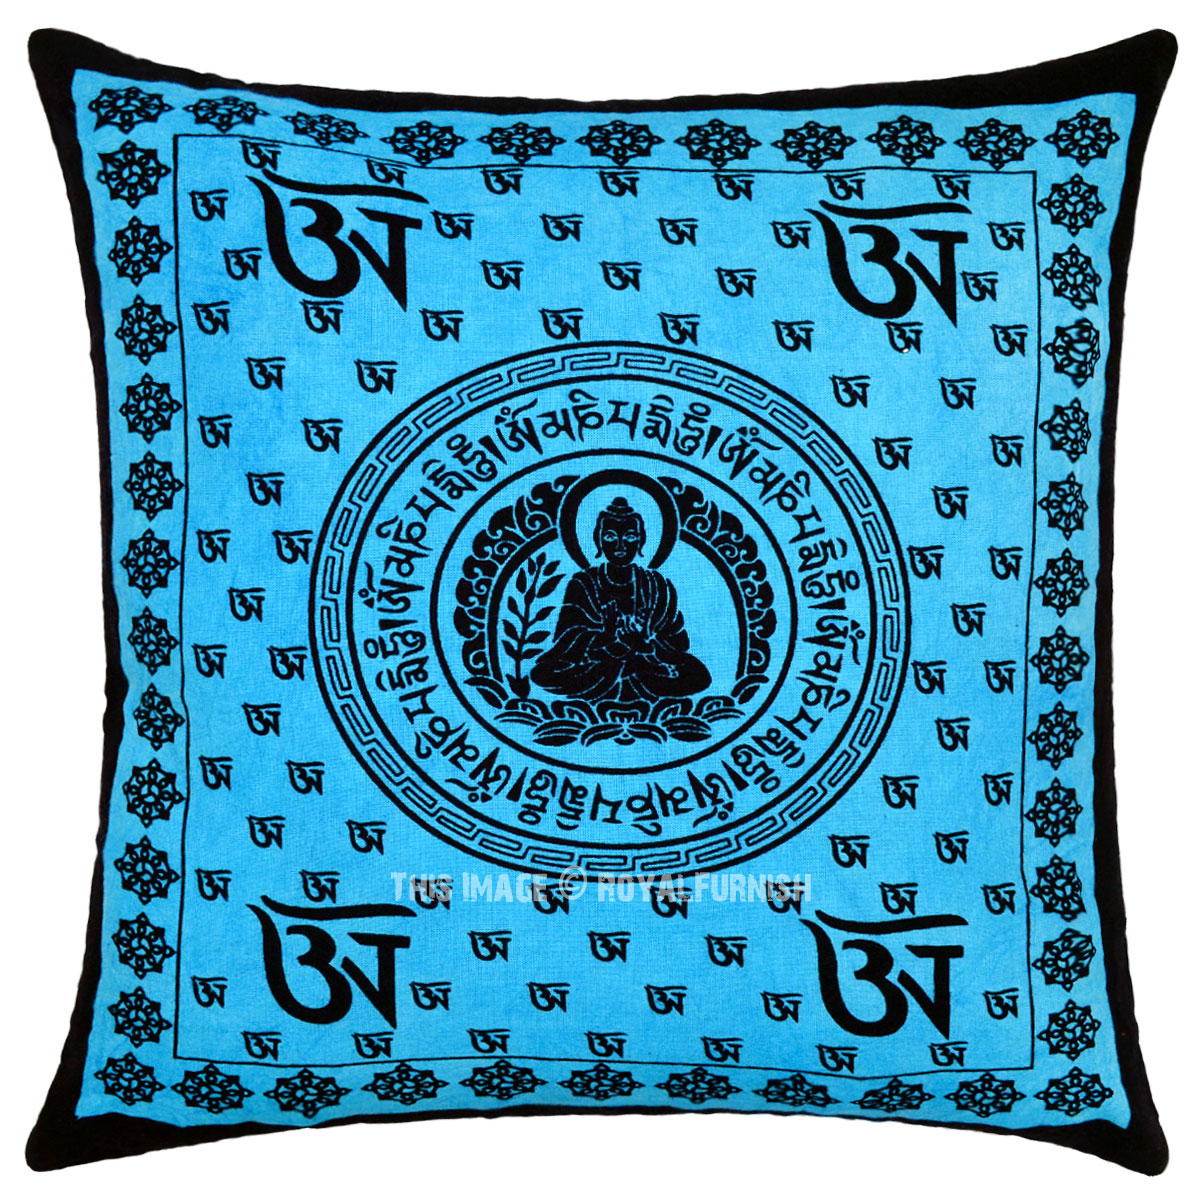 Turquoise Lotus Buddha Om Printed Decorative Tie Dye Throw